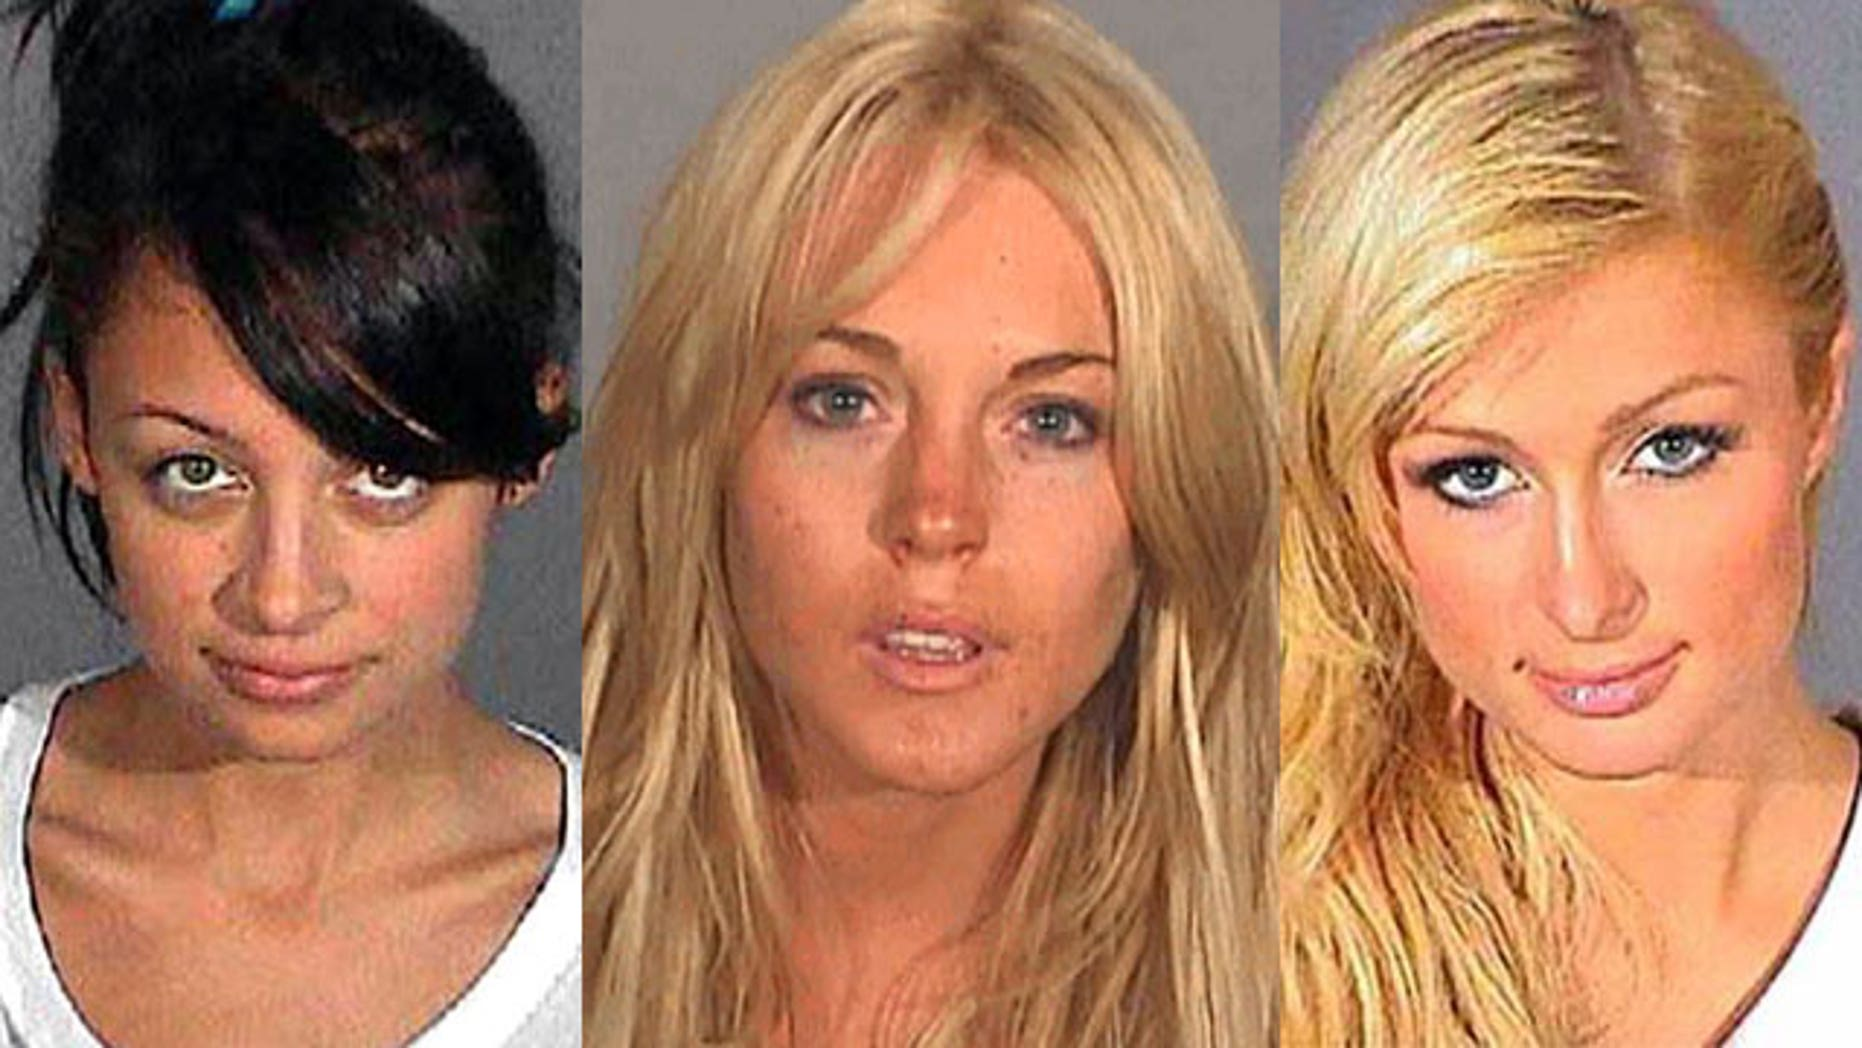 The mug shots of Nicole Richie, Lindsay Lohan, and Paris Hilton.